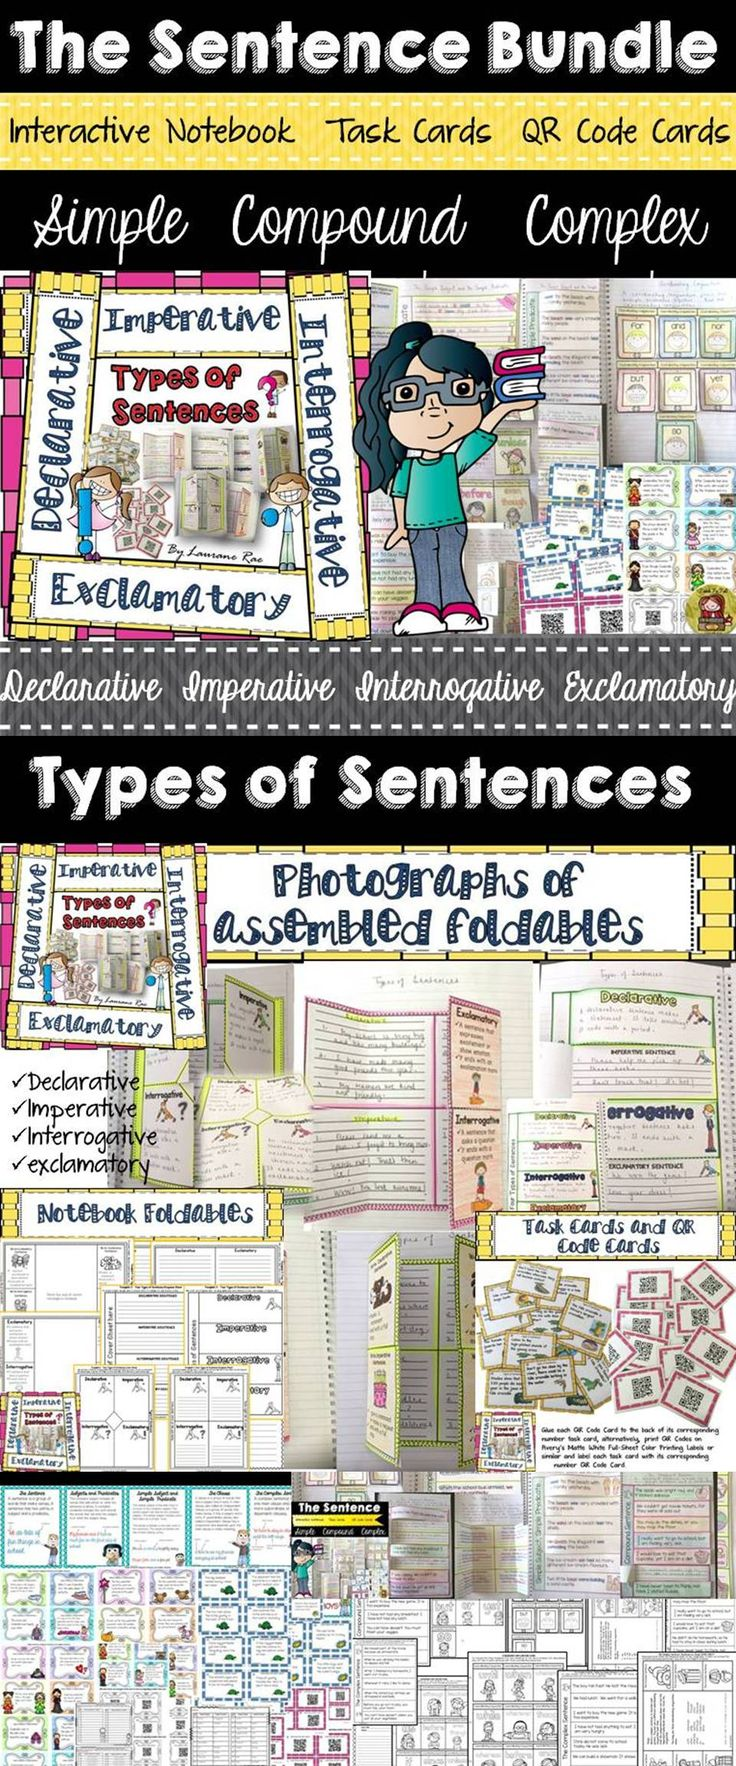 The Sentence Bundle comprises of interactive notebook templates, task cards, and QR code cards to teach sentence structure (simple, compound, complex) and the types of sentences (declarative, imperative, interrogative, exclamatory). https://www.teacherspayteachers.com/Product/THE-SENTENCE-BUNDLE-SIMPLE-COMPOUND-COMPLEX-TYPES-OF-SENTENCES-2057995